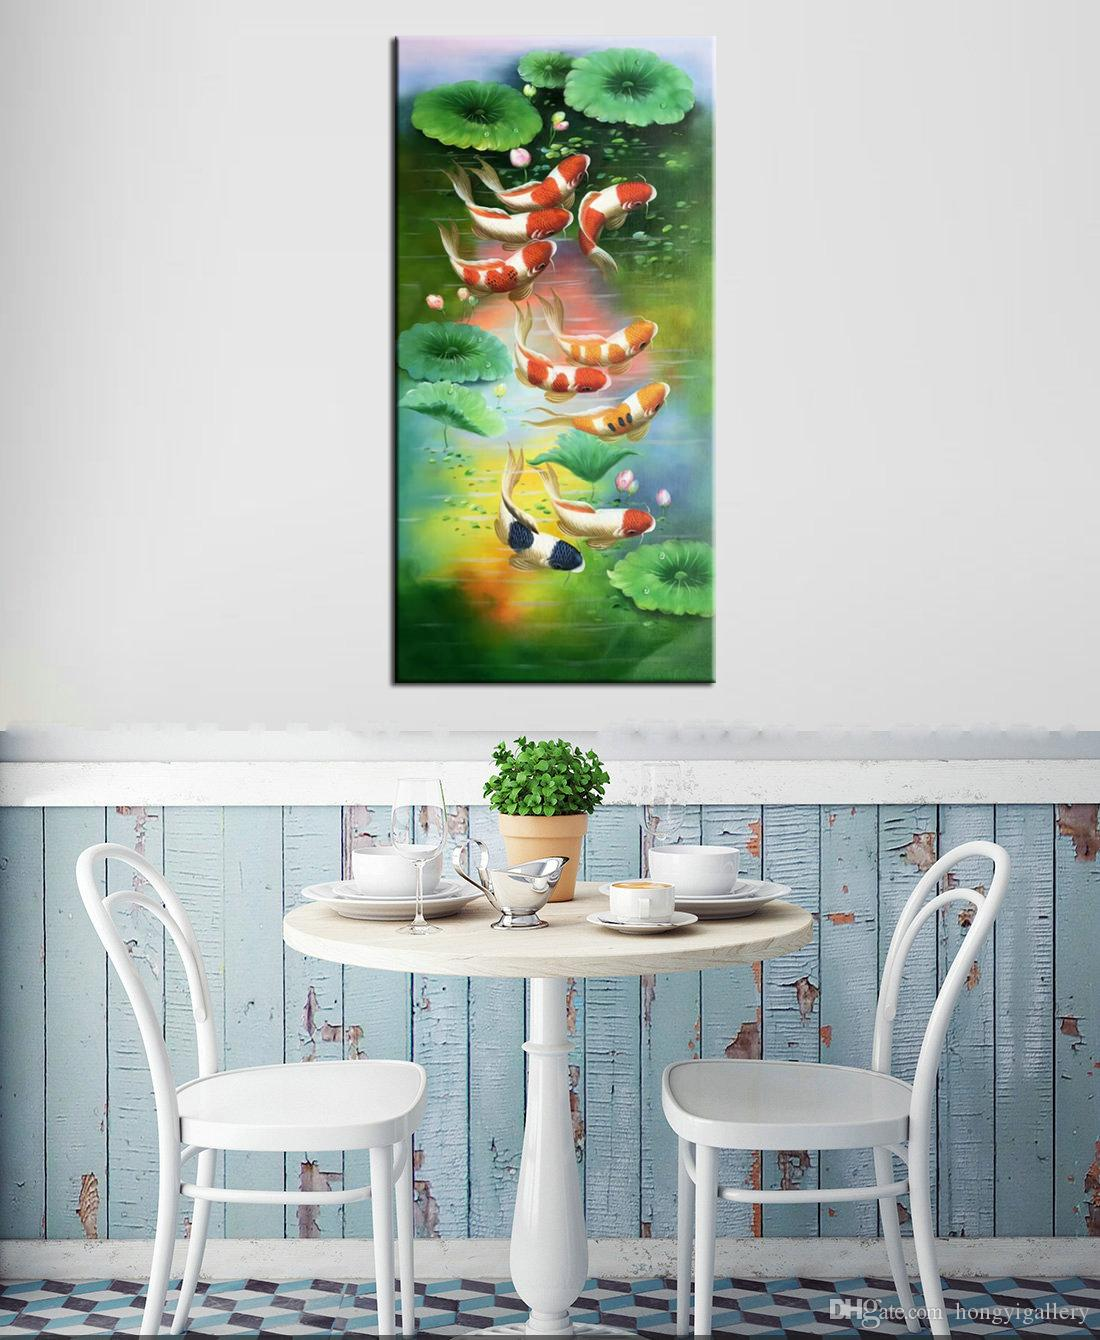 2019 100 Hand Painted Animal Feng Shui Koi Fish Oil Painting Wall Art China Wind Modern Canvas Living Room Bedroom Home Decoration Afs065 From